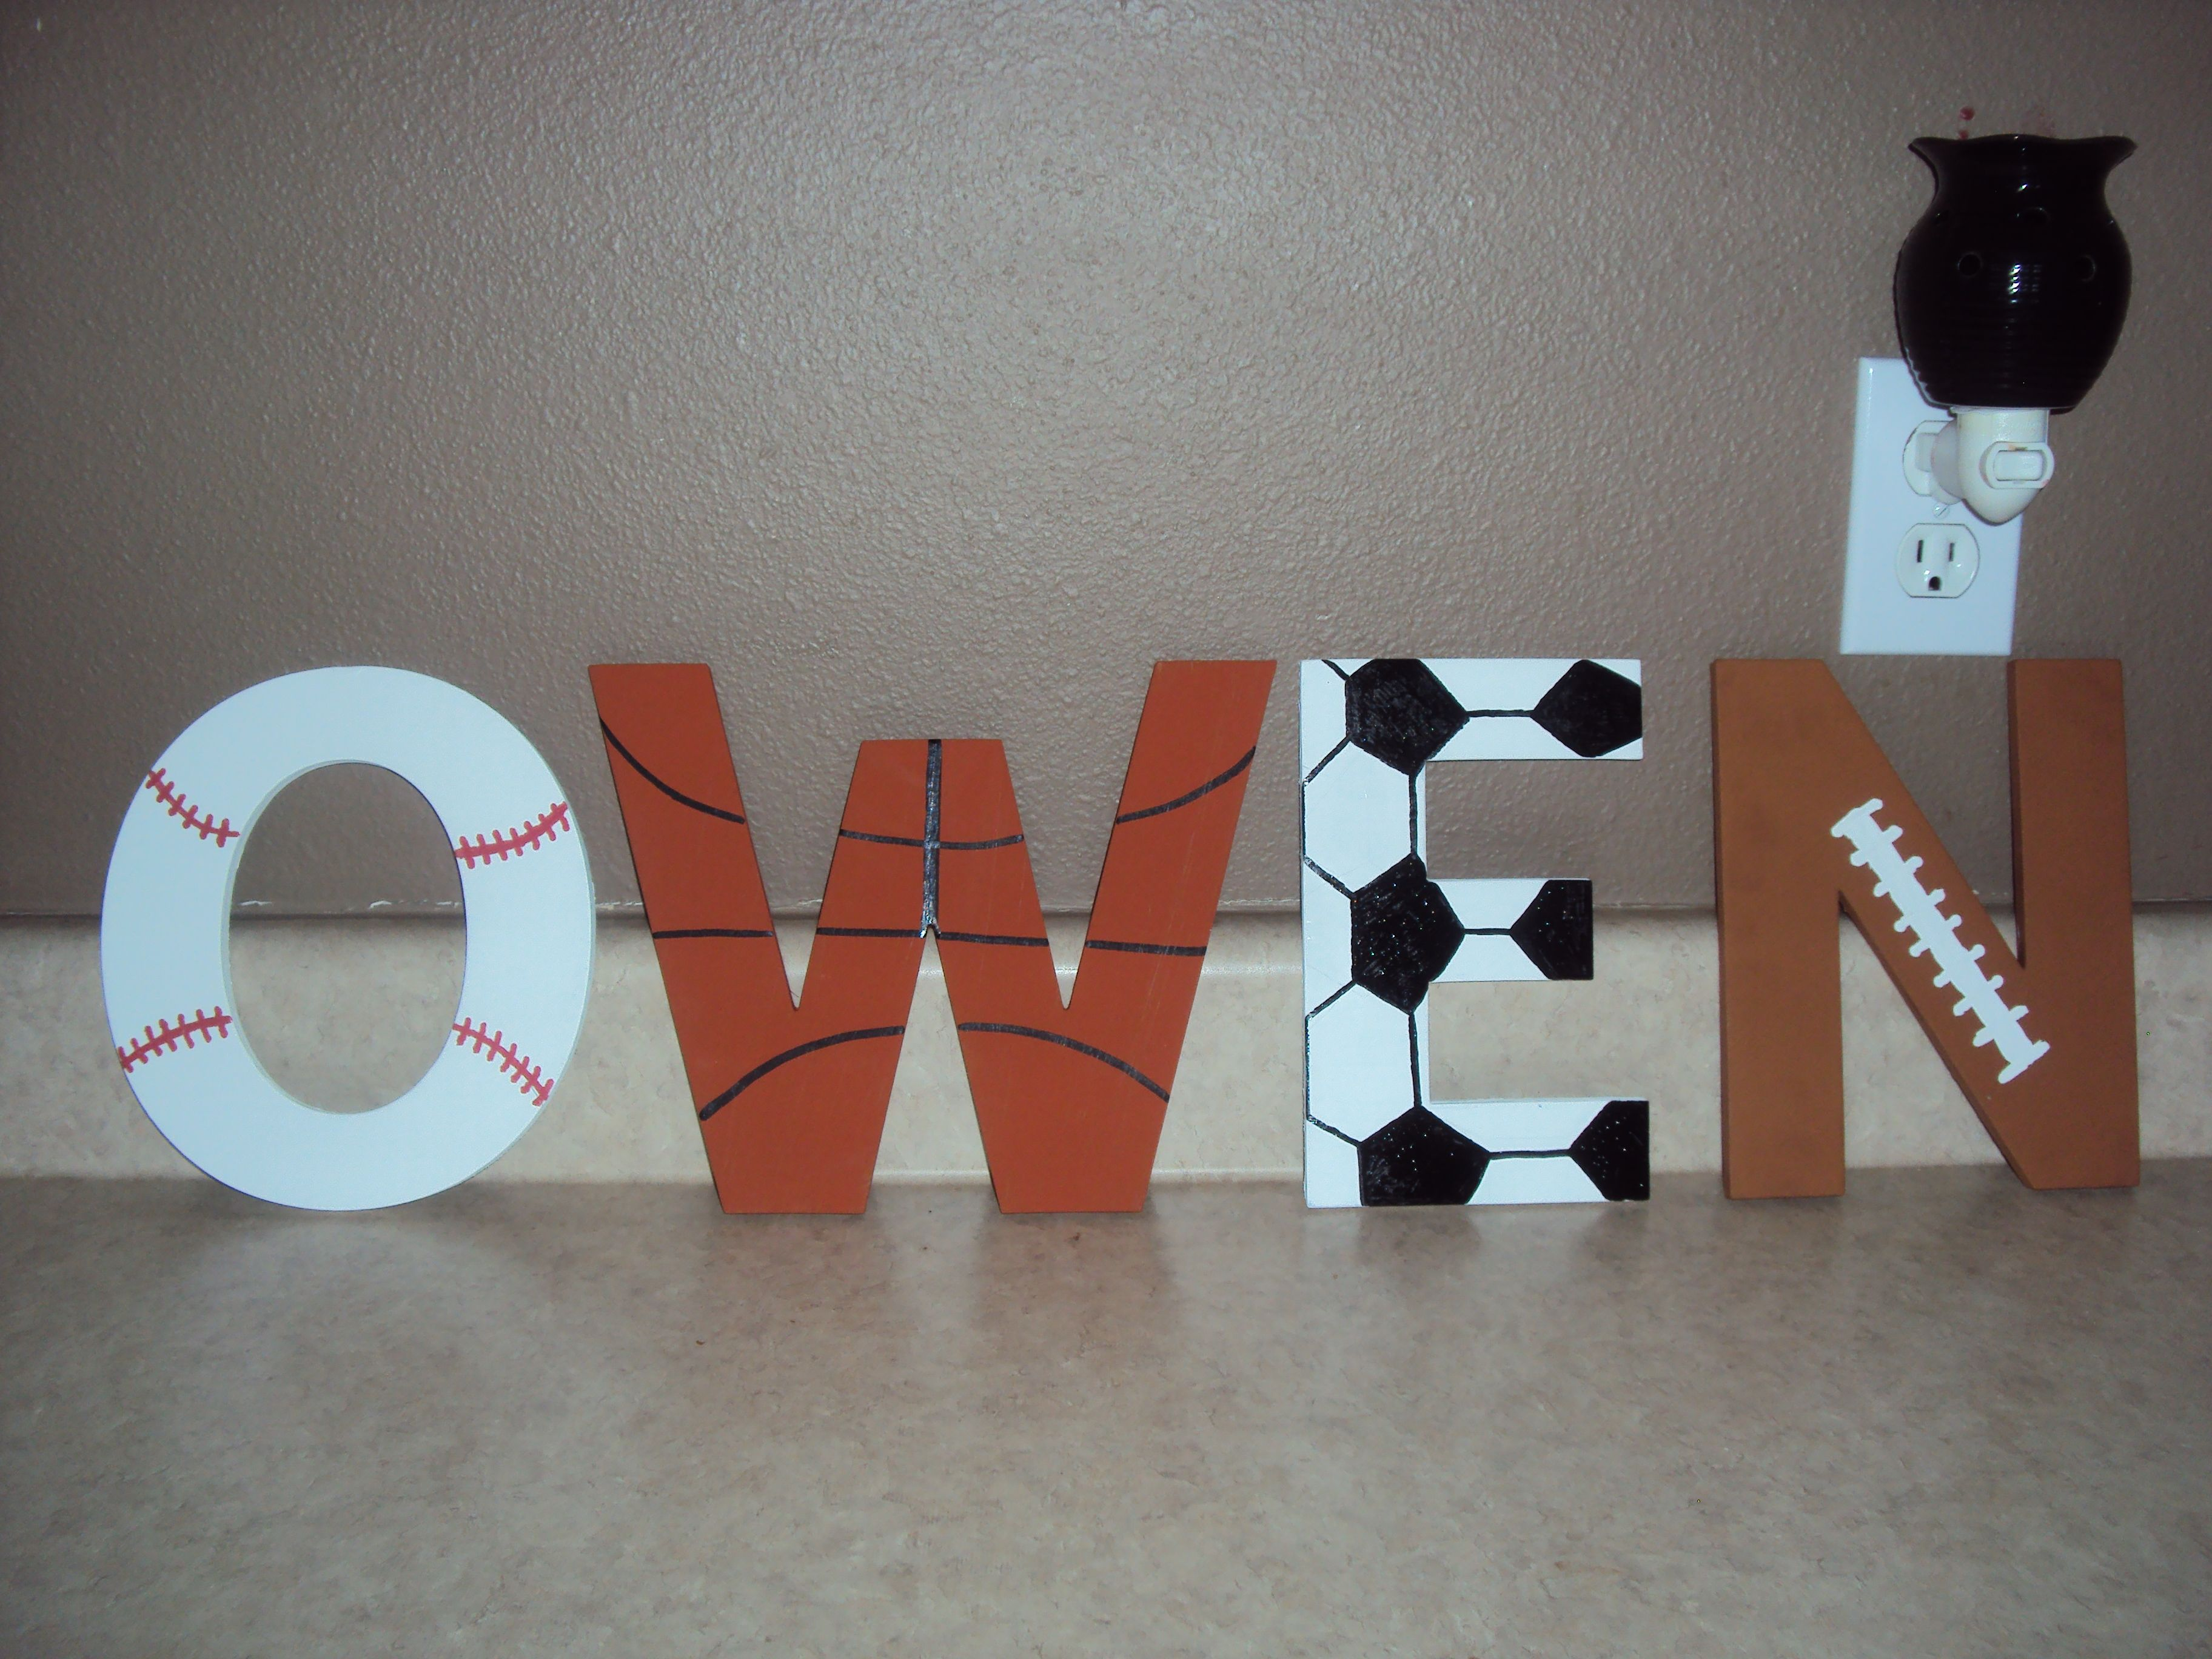 Owen S Name Wood Letters Painted In A Sports Theme Kids